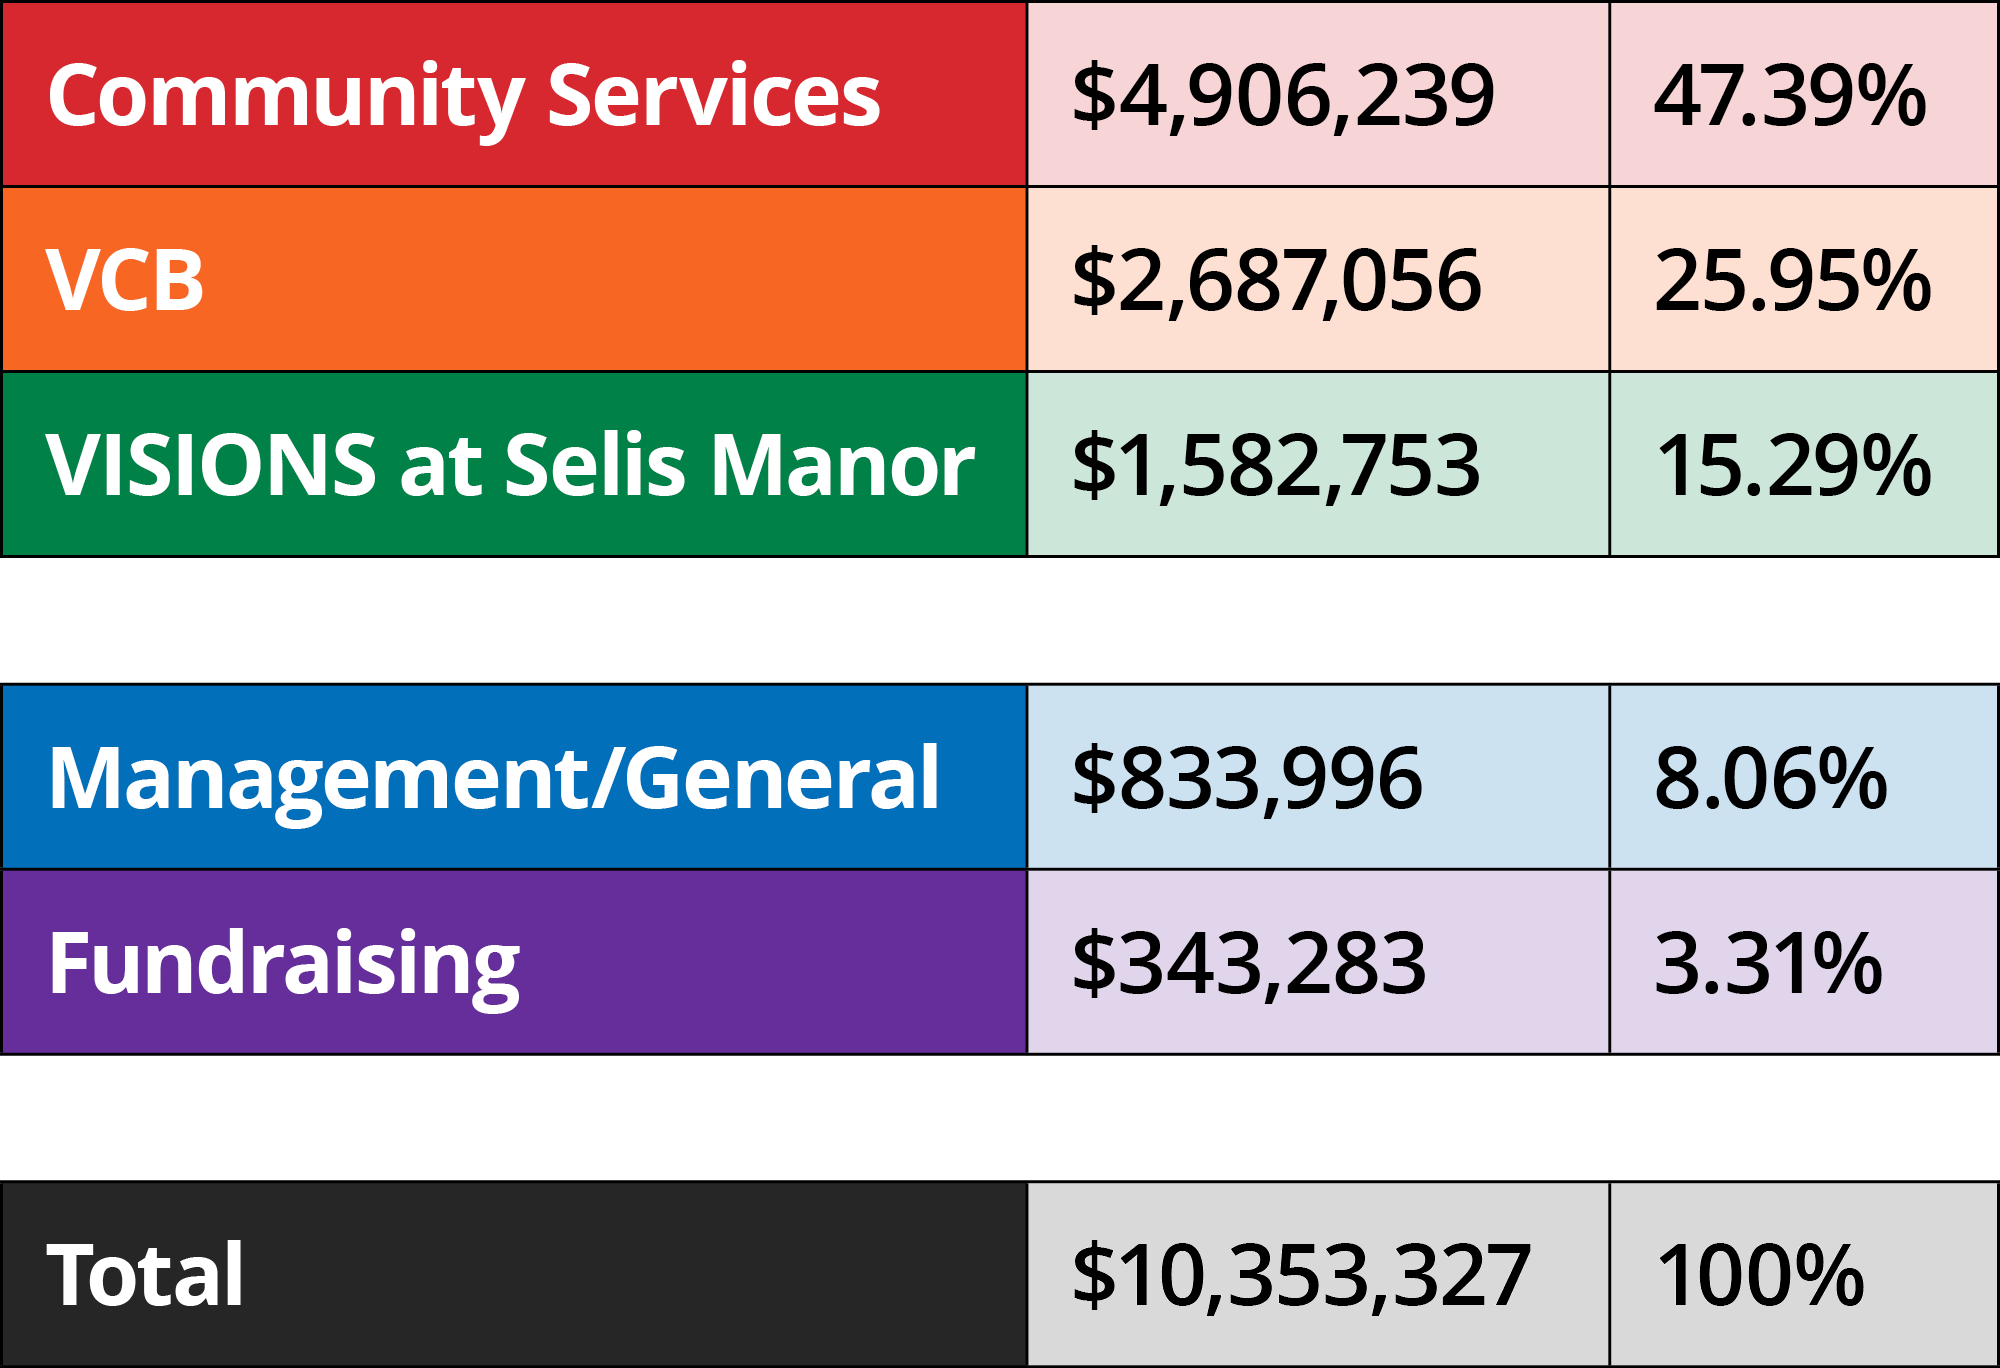 Table: VISIONS Expenses. Community Services: 47.39% or $4,906,239. VISIONS Center on Blindness: 25.95% or $2,687,056. VISIONS at Selis Manor: 15.29% or $1,582,753. Program services account for 88.63% of VISIONS expenses, or $9,176,048. Management and General: 8.06% or $833,996. Fundraising: 3.51% or $343,283. Supporting services account for 11.37% of VISIONS expenses, or $1,177,279.